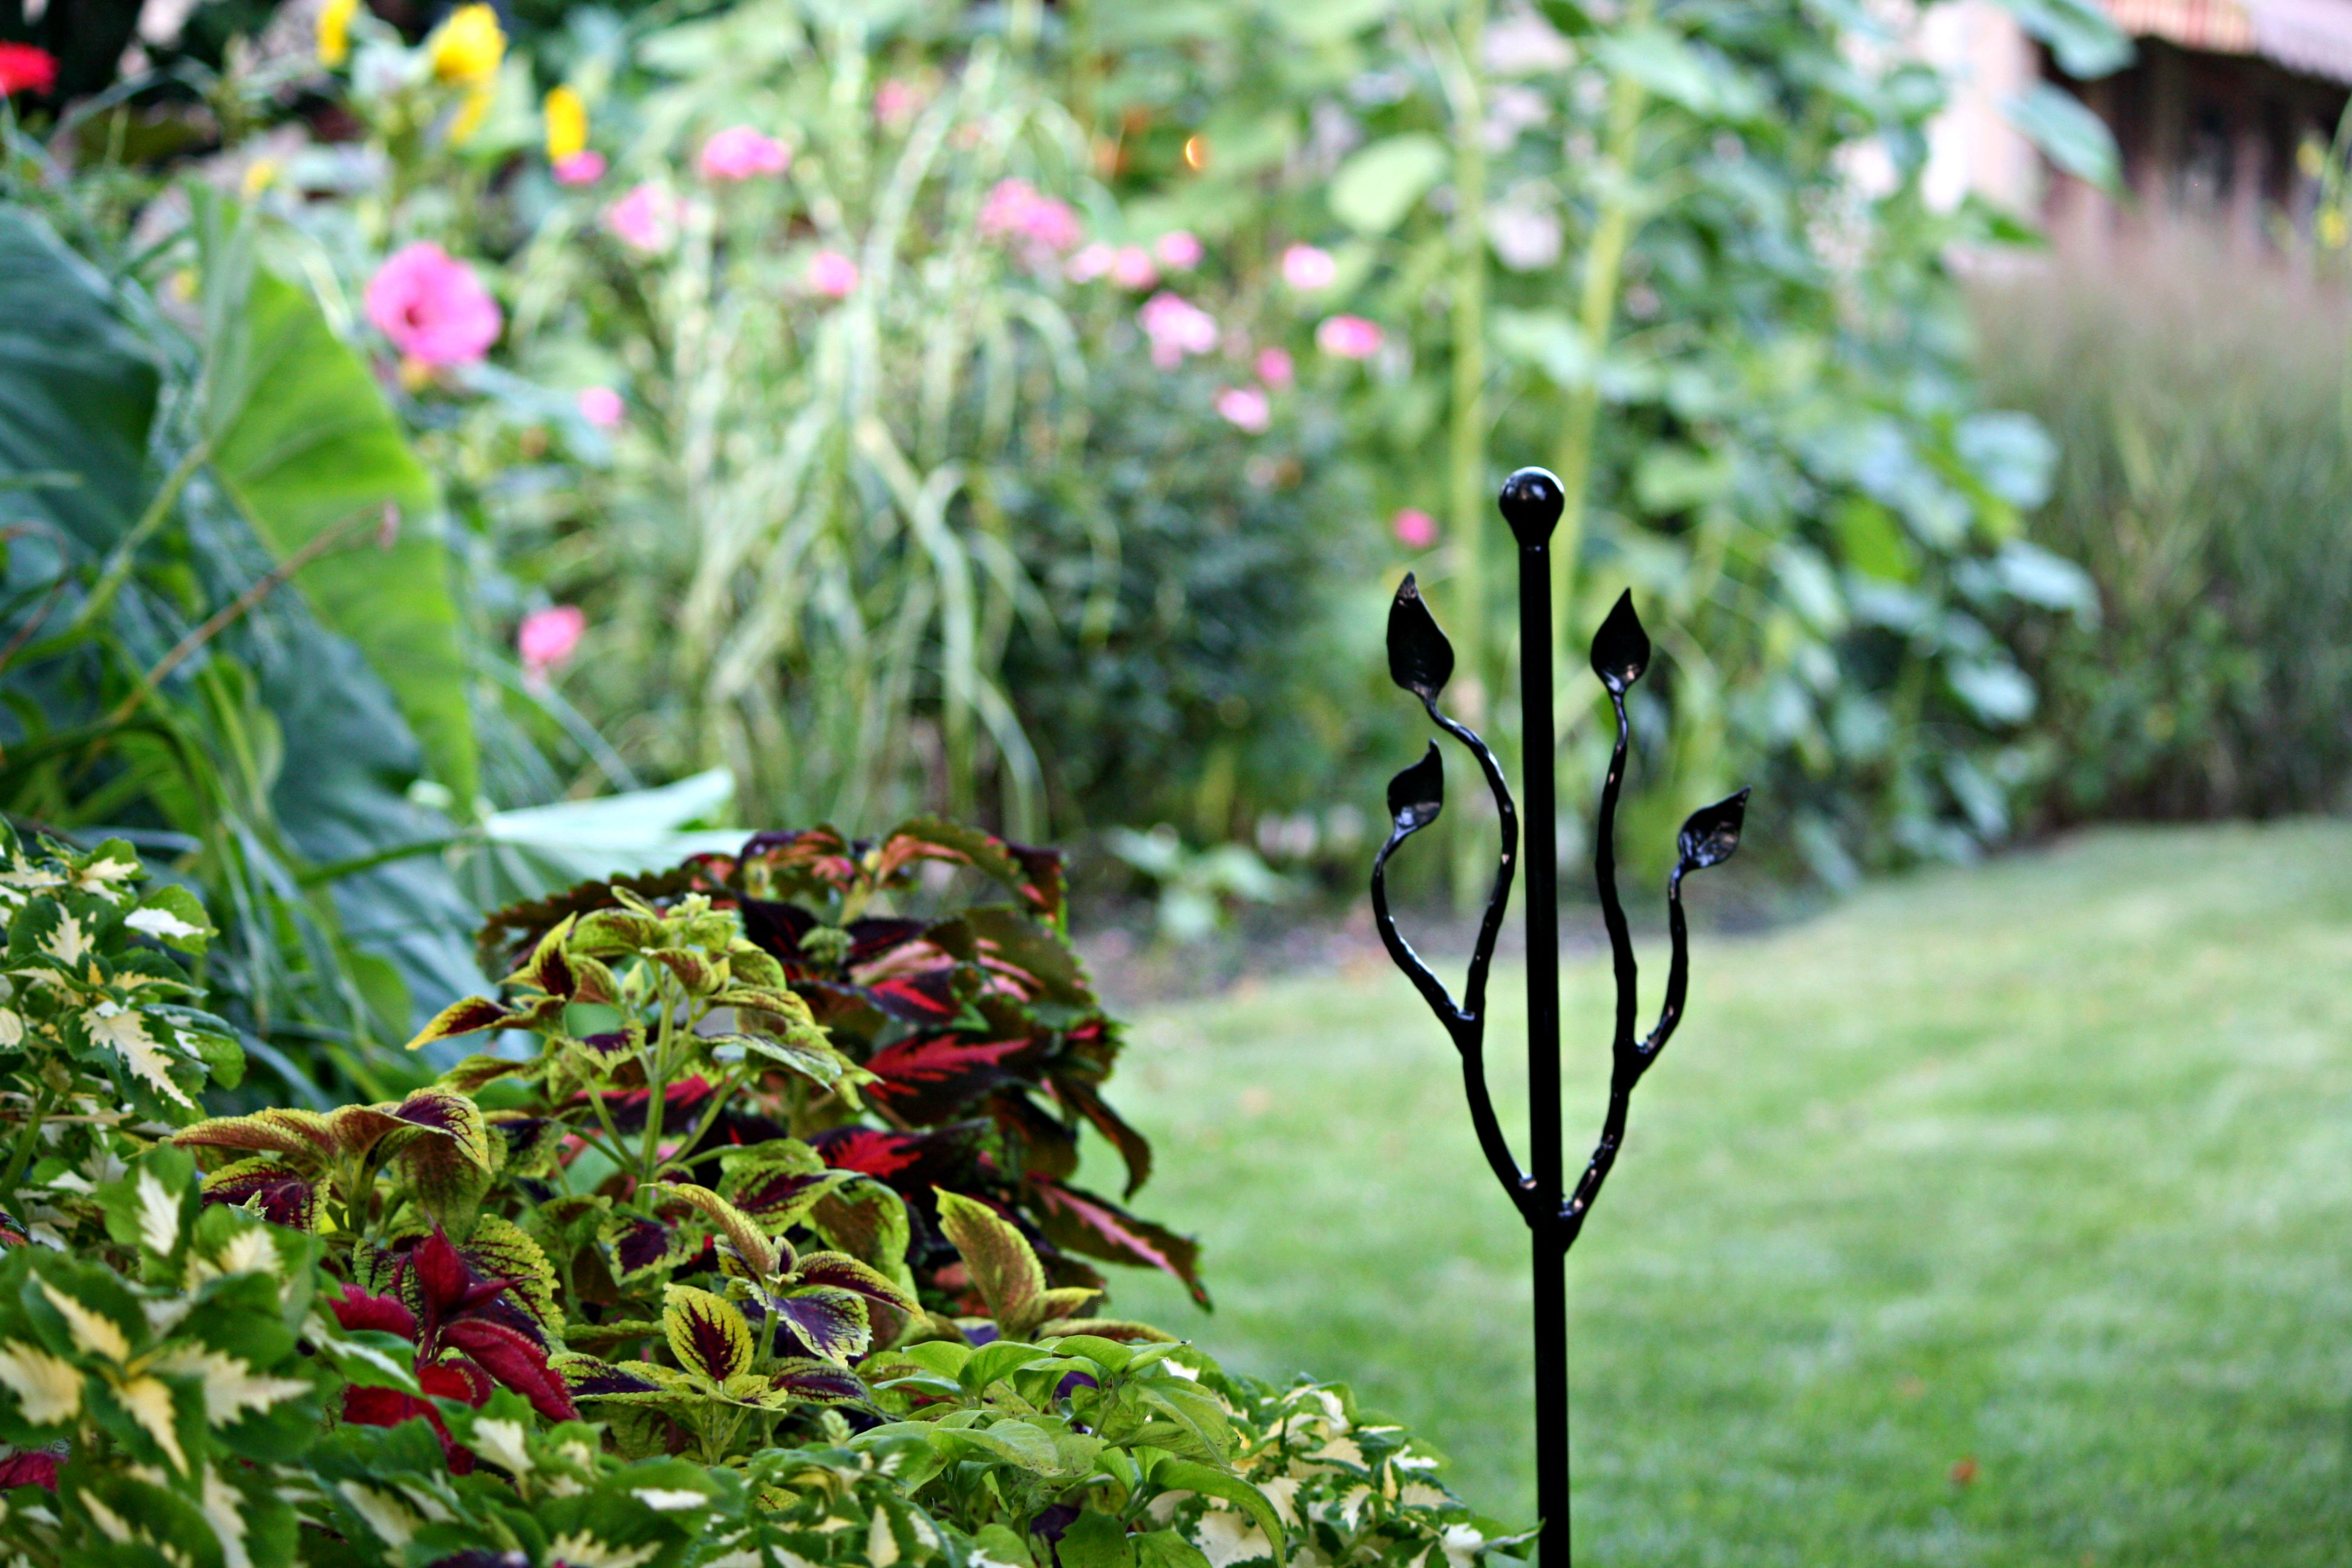 garden hose stakes. these unique garden stakes designed to guide a hose safely around plants